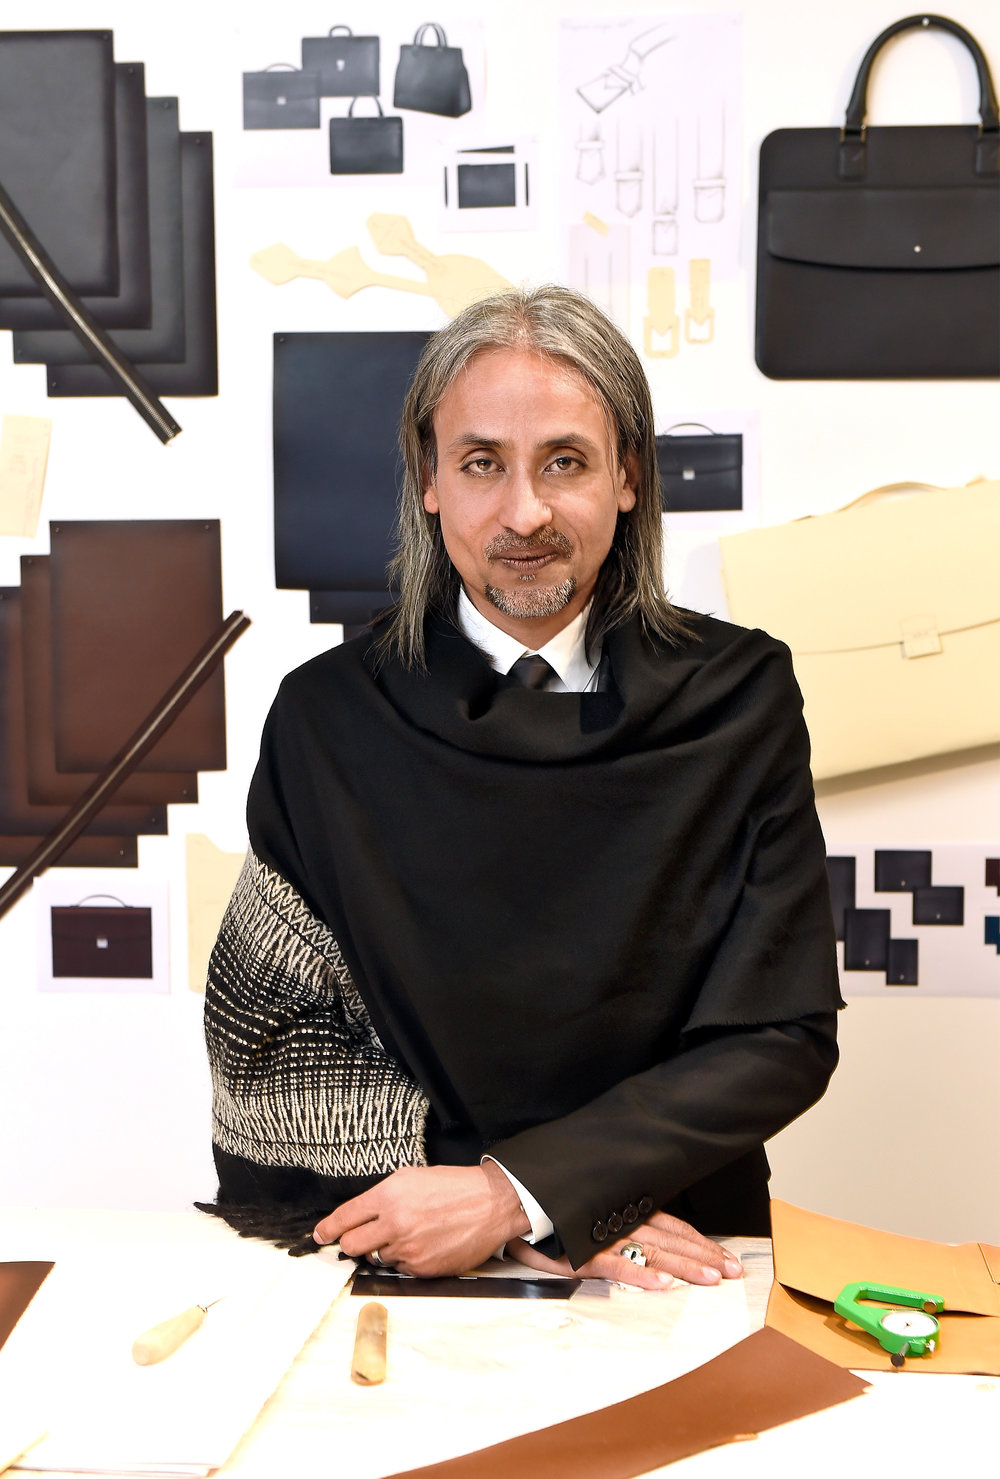 Zaim Kamal, Creative Director of Montblanc